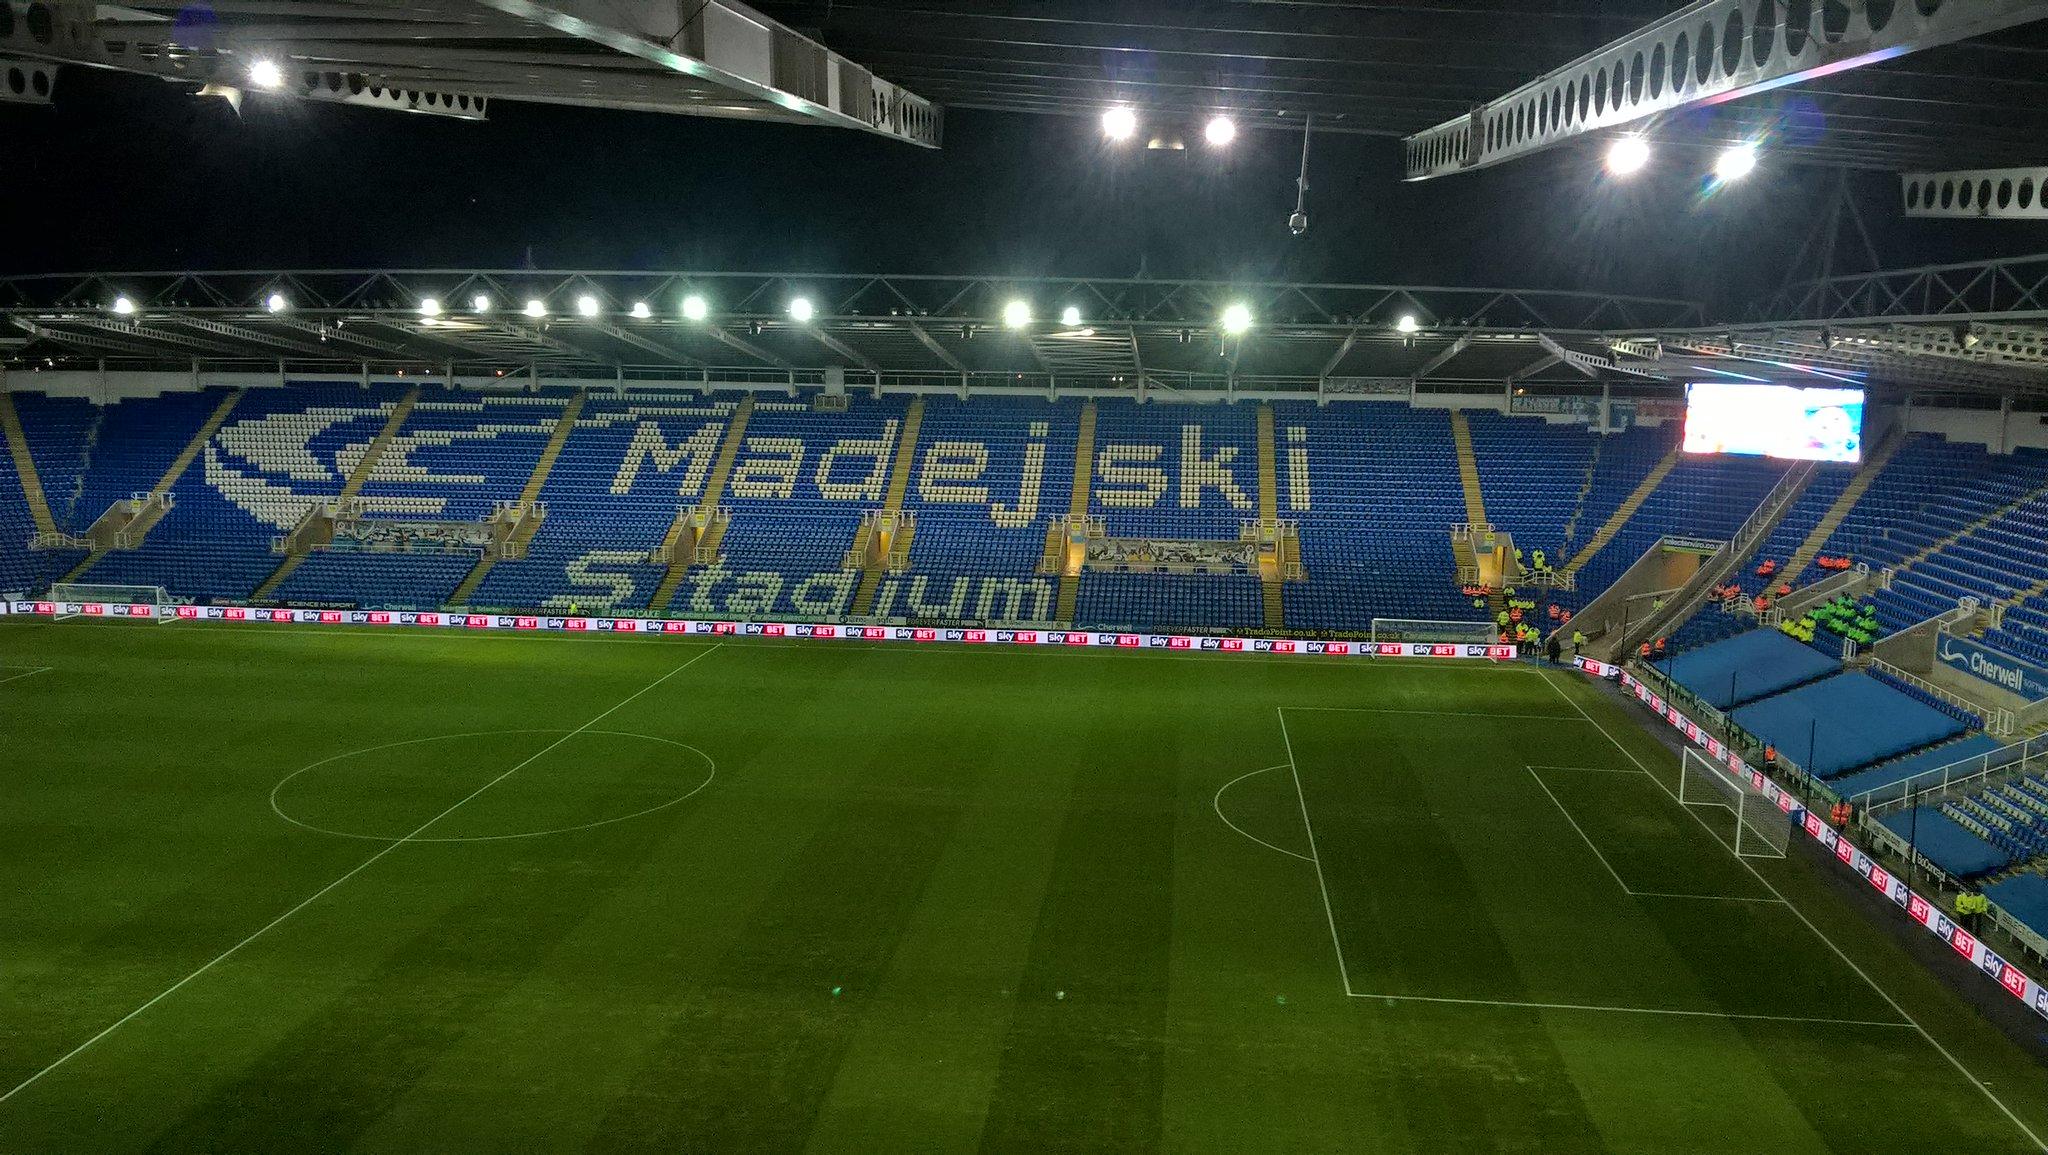 Madejski Stadium at night.